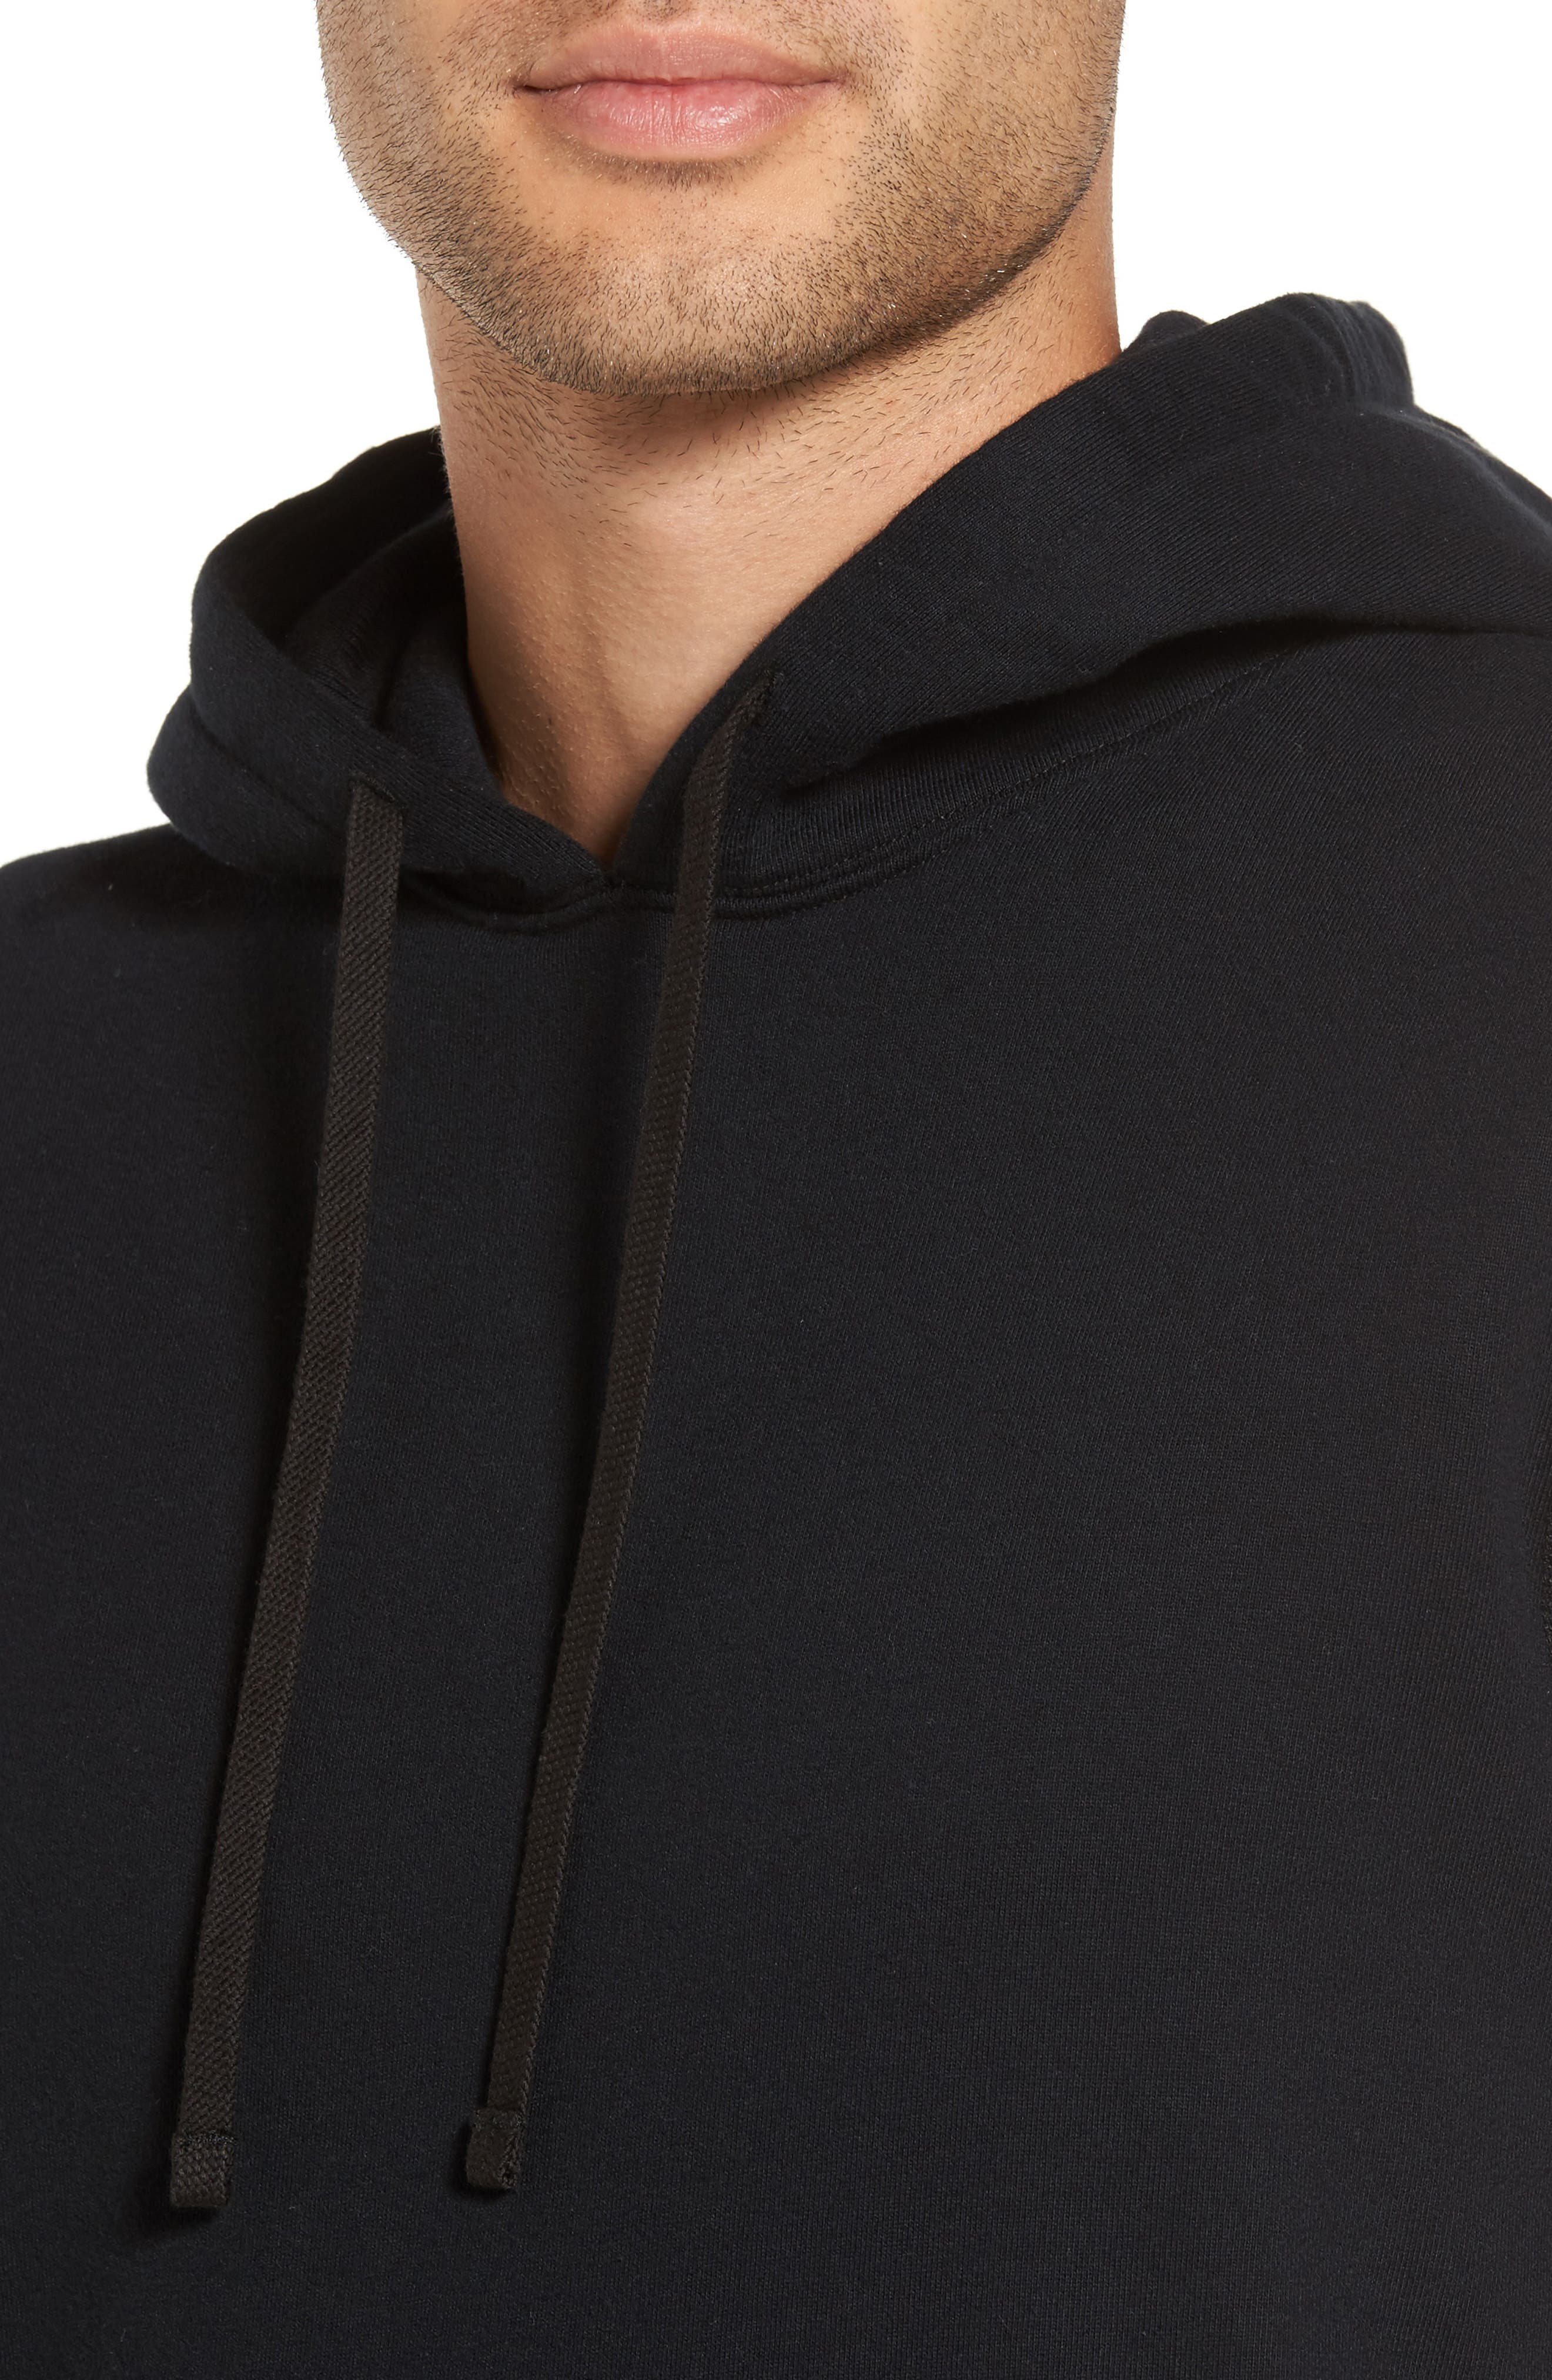 REIGNING CHAMP,                             French Terry Hoodie,                             Alternate thumbnail 4, color,                             001